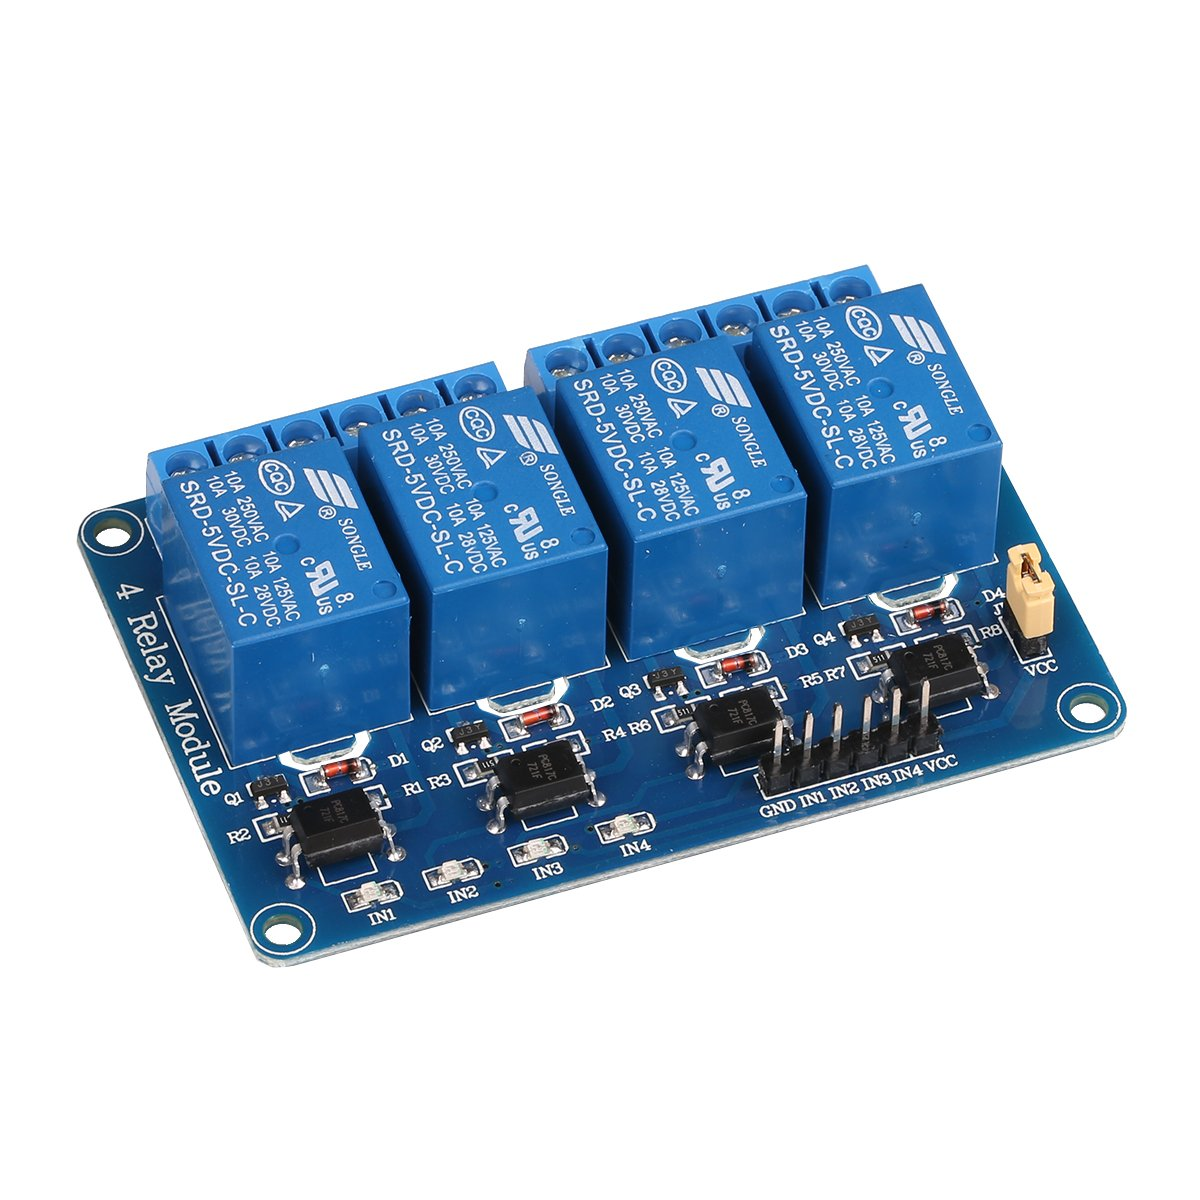 Jbtek 4 Channel Dc 5v Relay Module For Arduino Raspberry Dc5v To Dc30v Converter By 74hc14 Pi Dsp Avr Pic Arm Computers Accessories